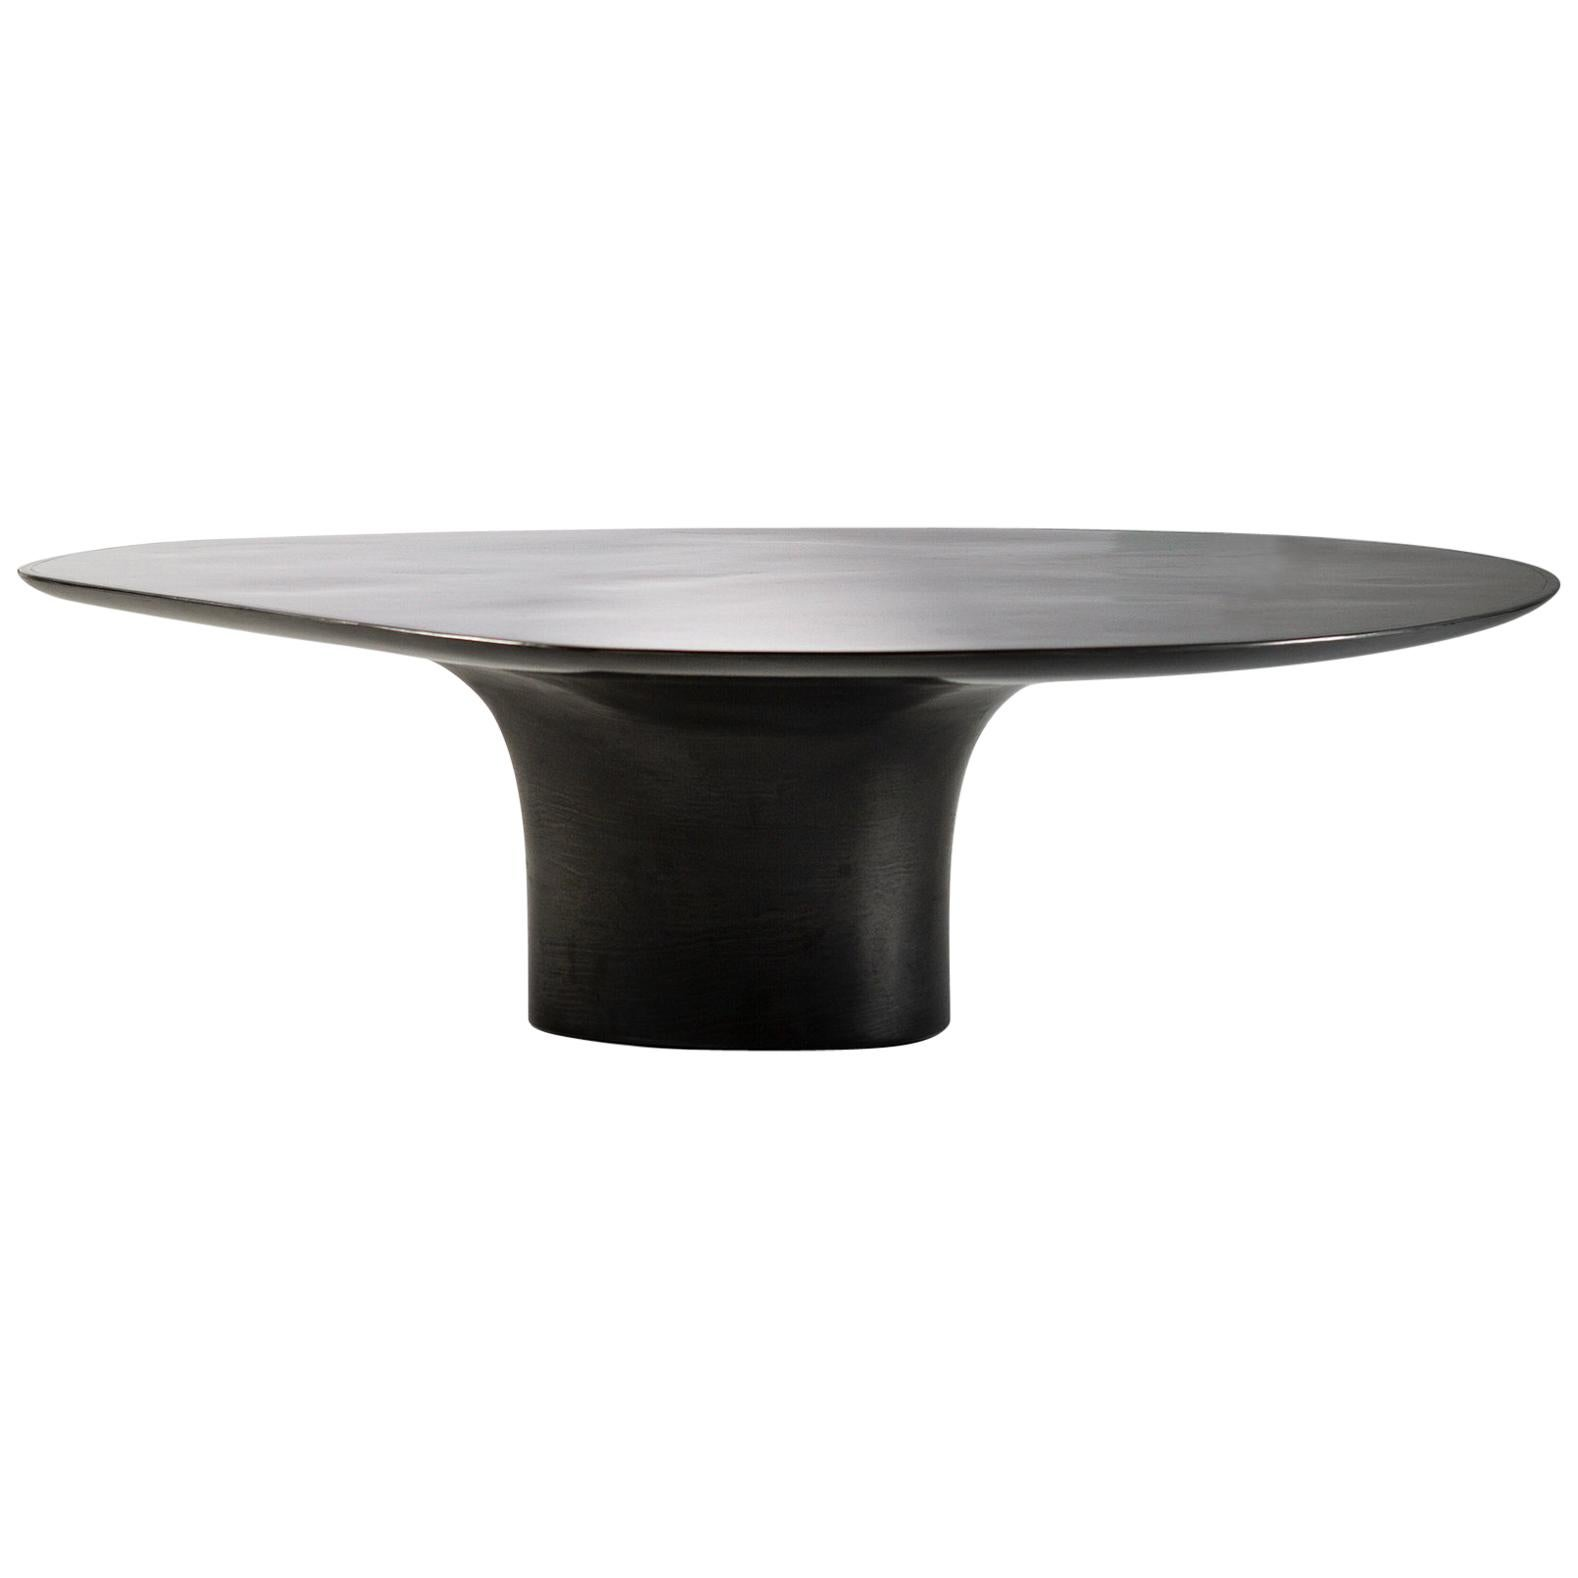 NR Hand Sculpted Liquid Metal Low Cocktail Table